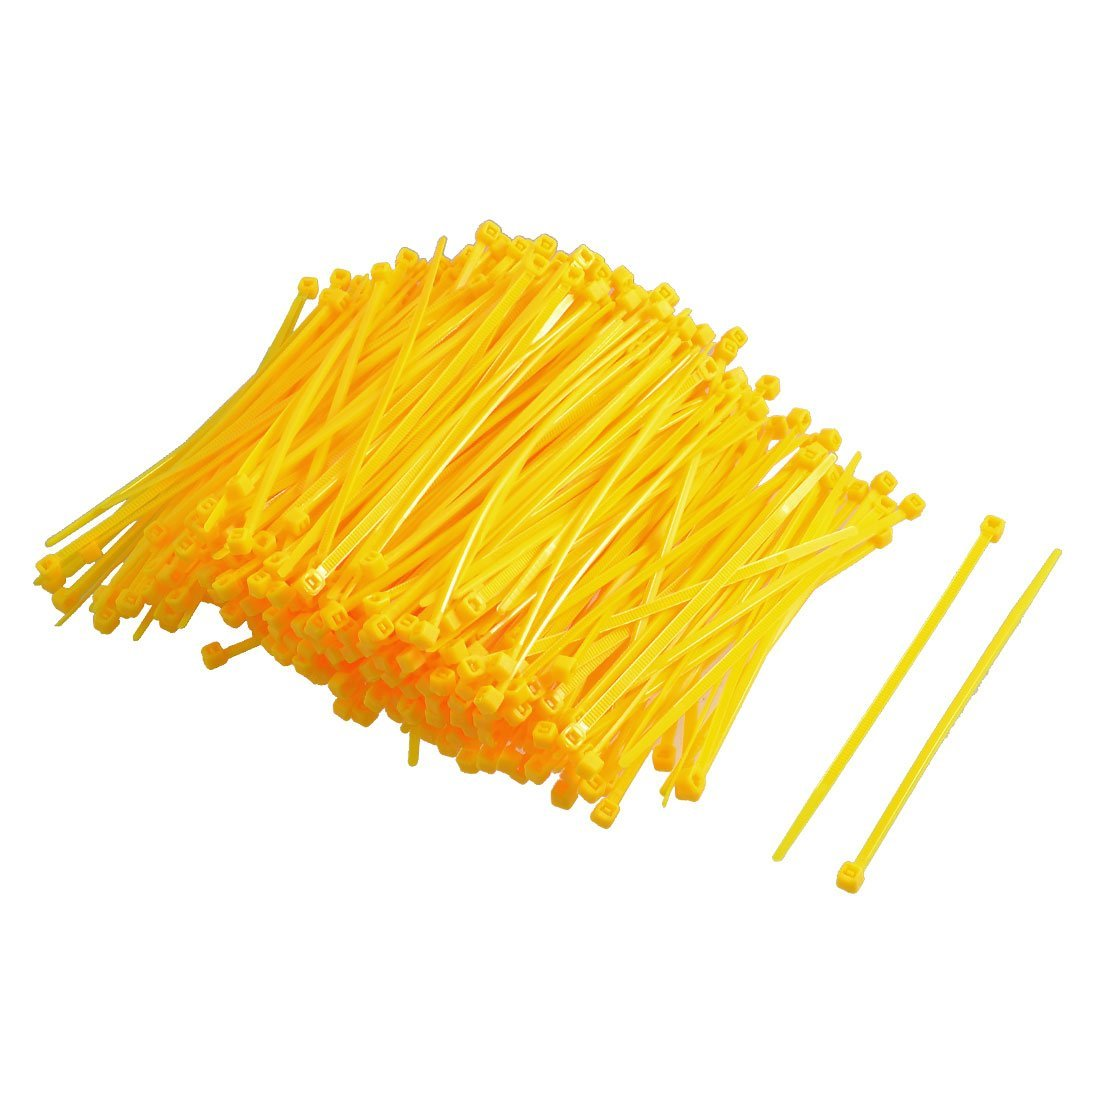 Uxcell Nylon Adjustable Self locking Cable Ties 2.5 x 100 mm Yellow 300 Piece